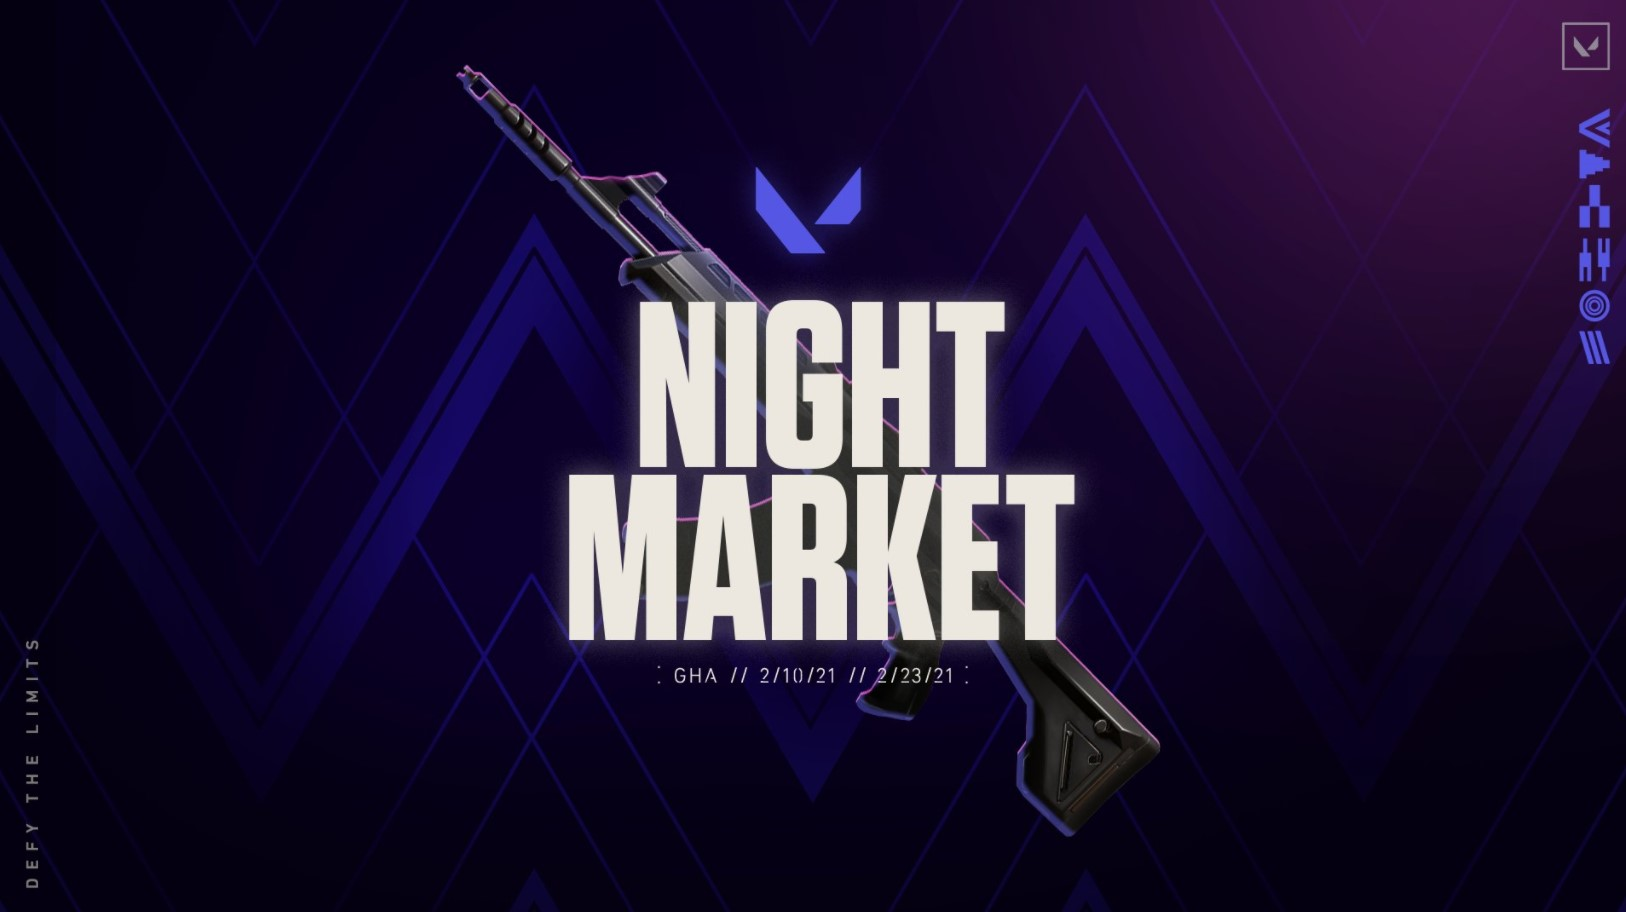 Valorant is back with Night Market 2.0